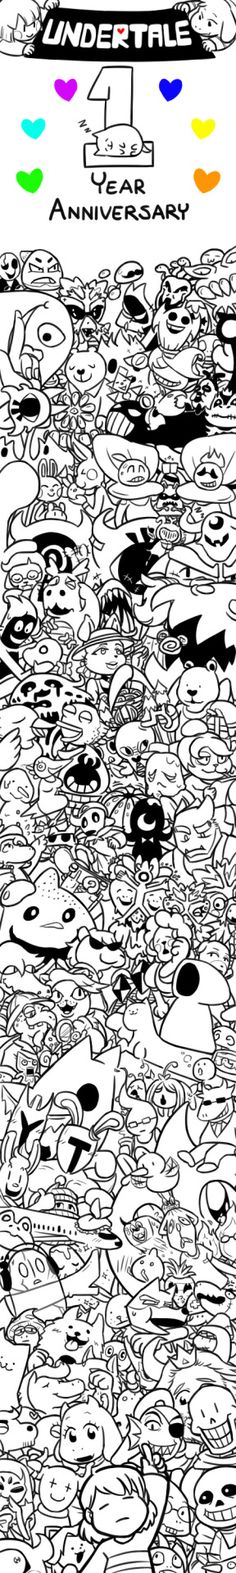 Happy (belated) 1 year anniversary! It's a game that brought a lot of change in my life, so why not show my thanks by drawing every single beloved Undertale characters?